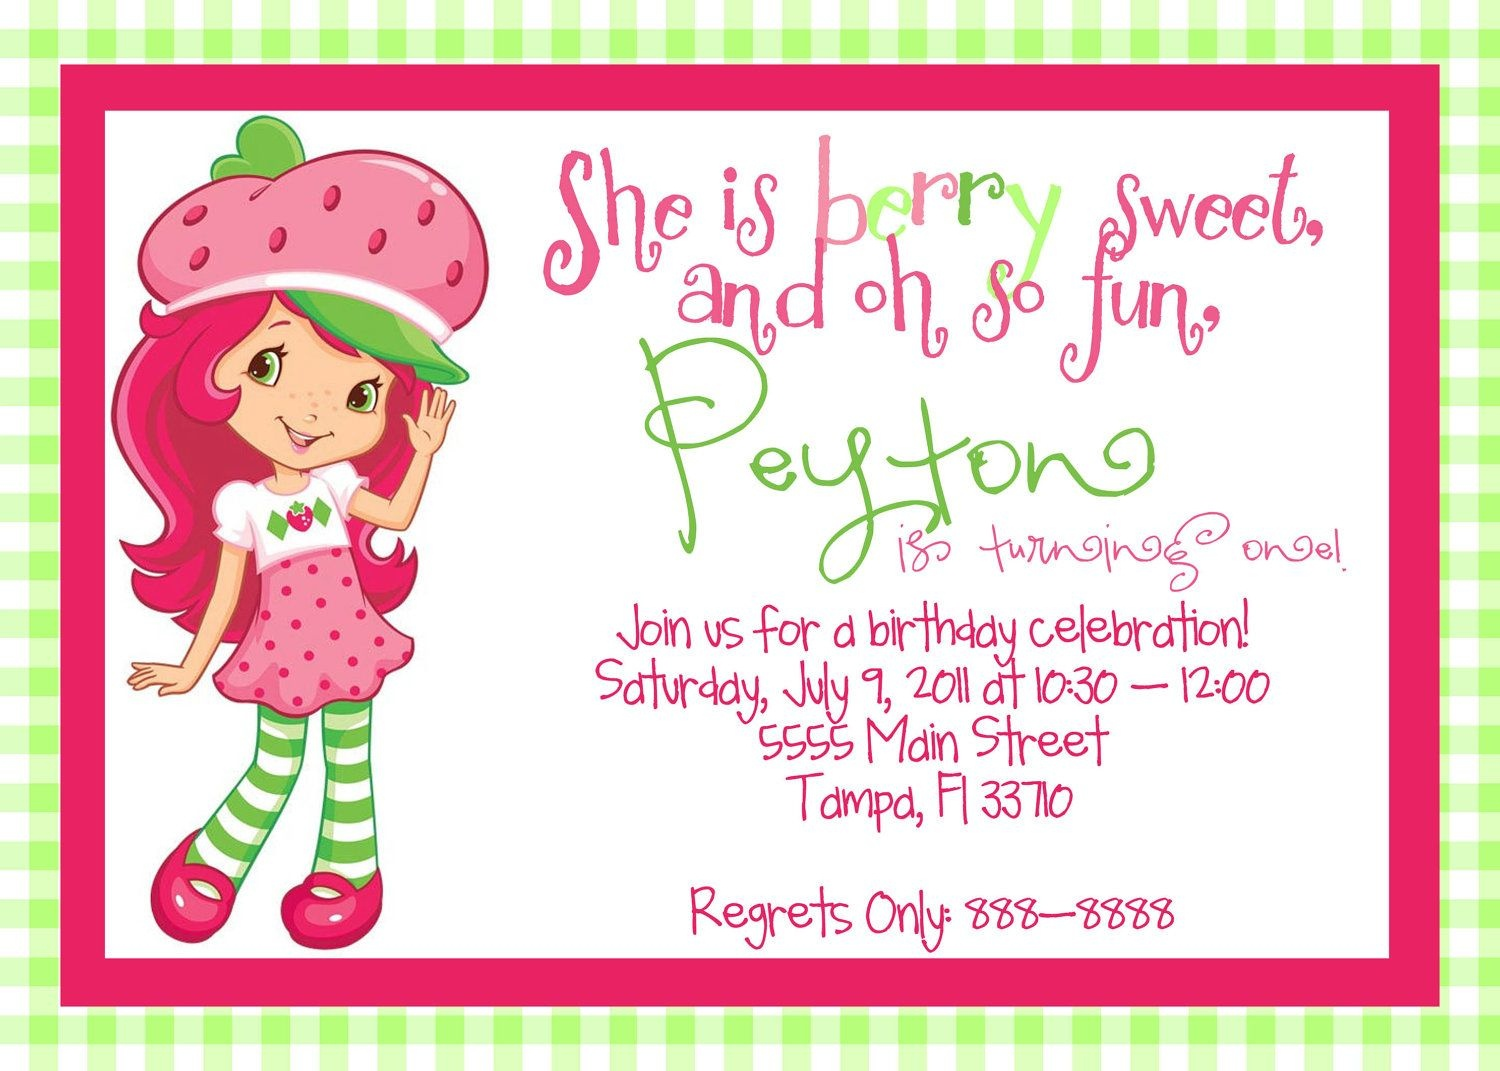 Posts Related To Strawberry Shortcake Birthday Invitation Templates - Strawberry Shortcake Birthday Cards Free Printable